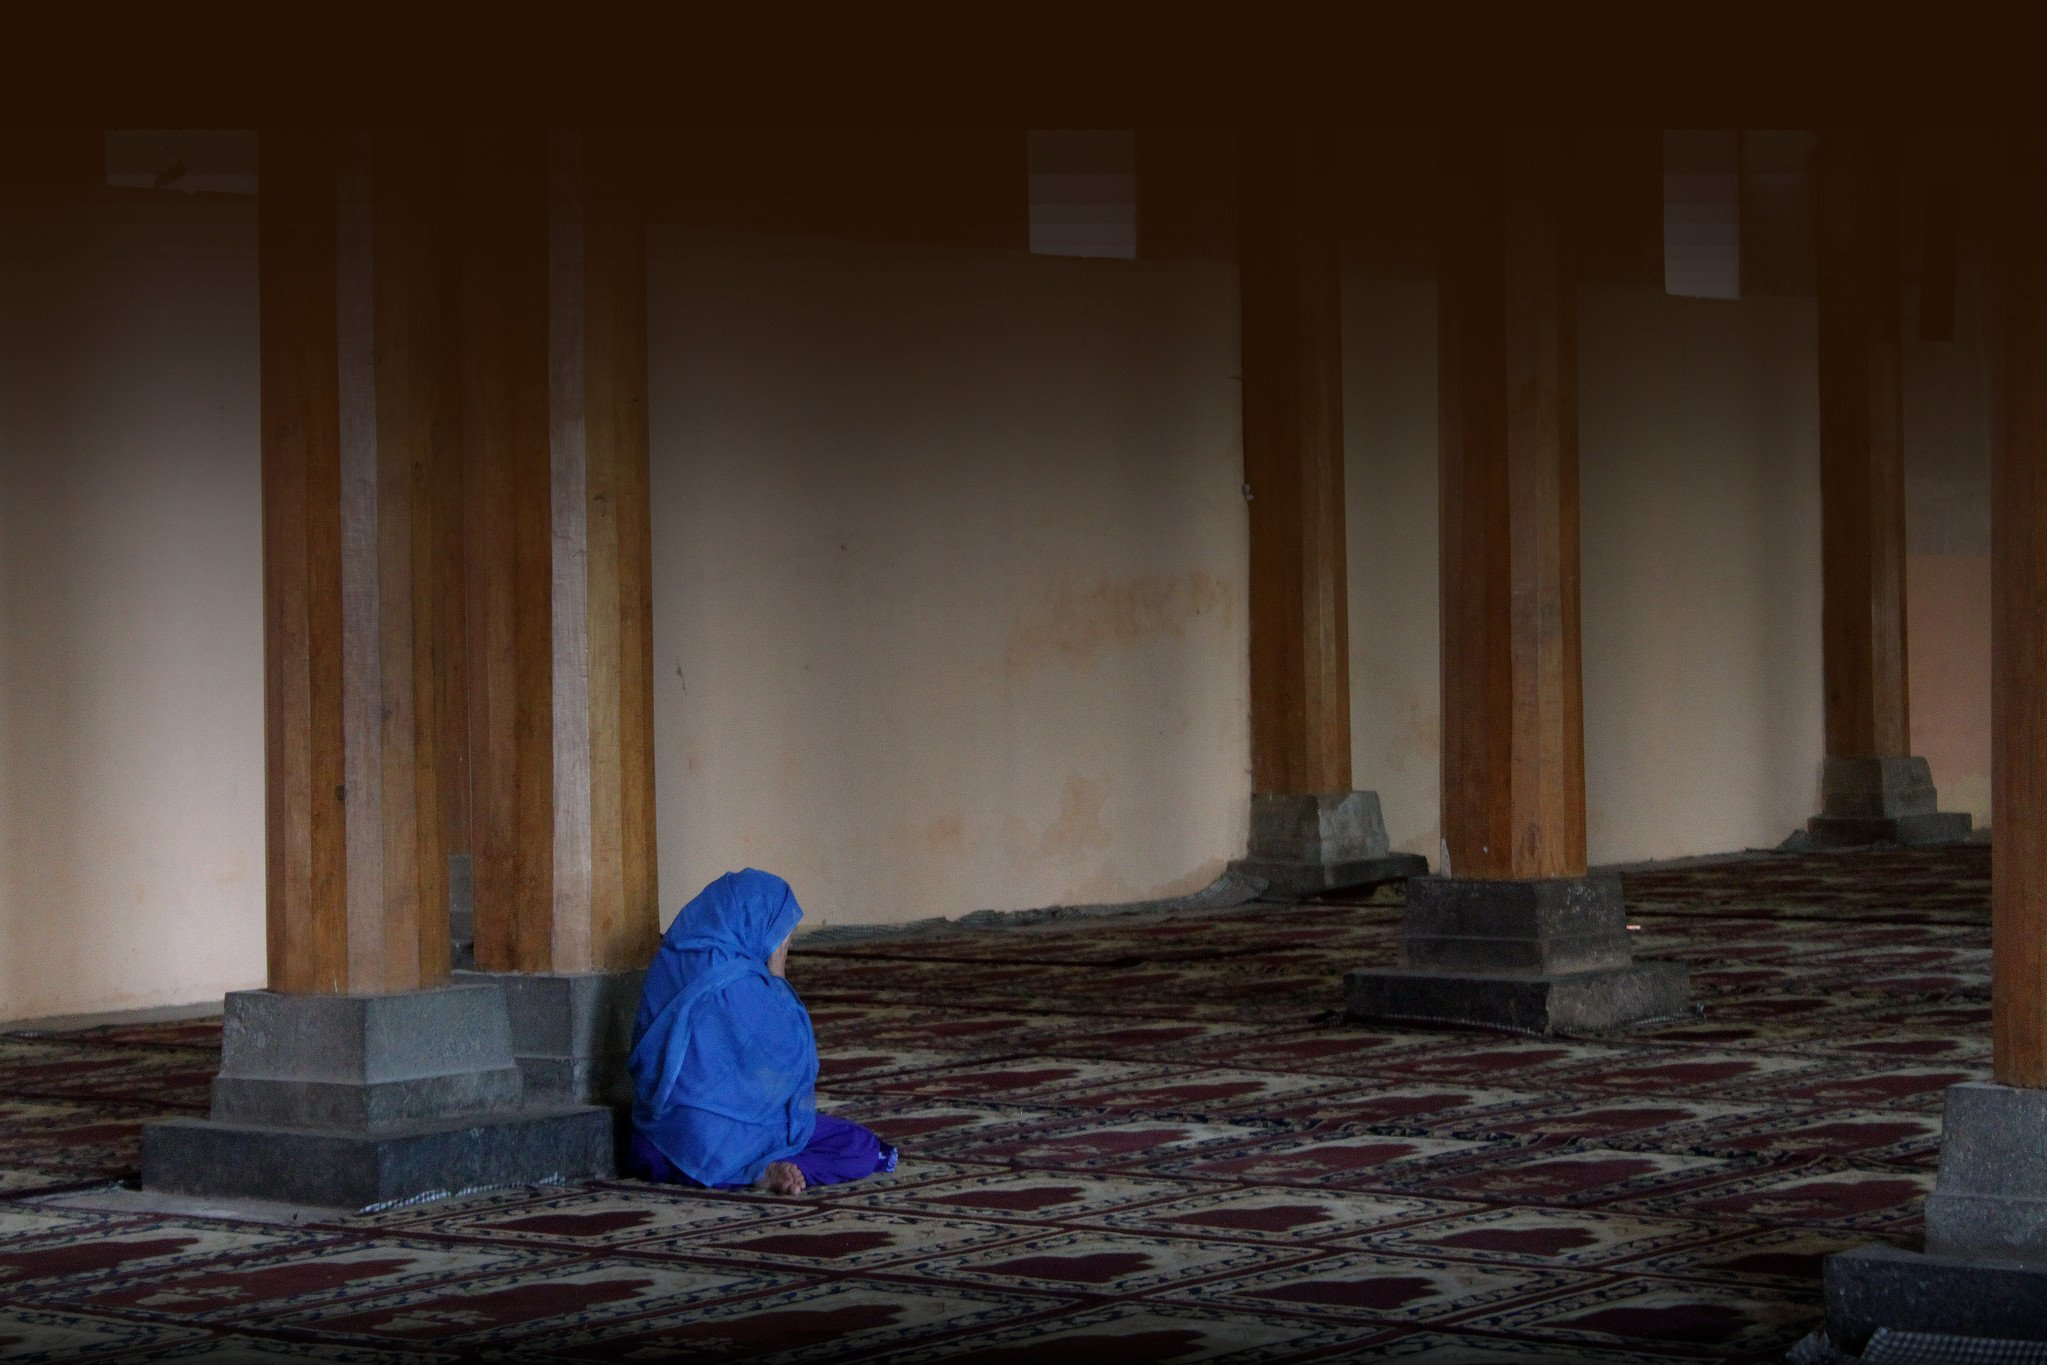 Woman praying inside Jamia Masjid, India by flowcomm on Flickr